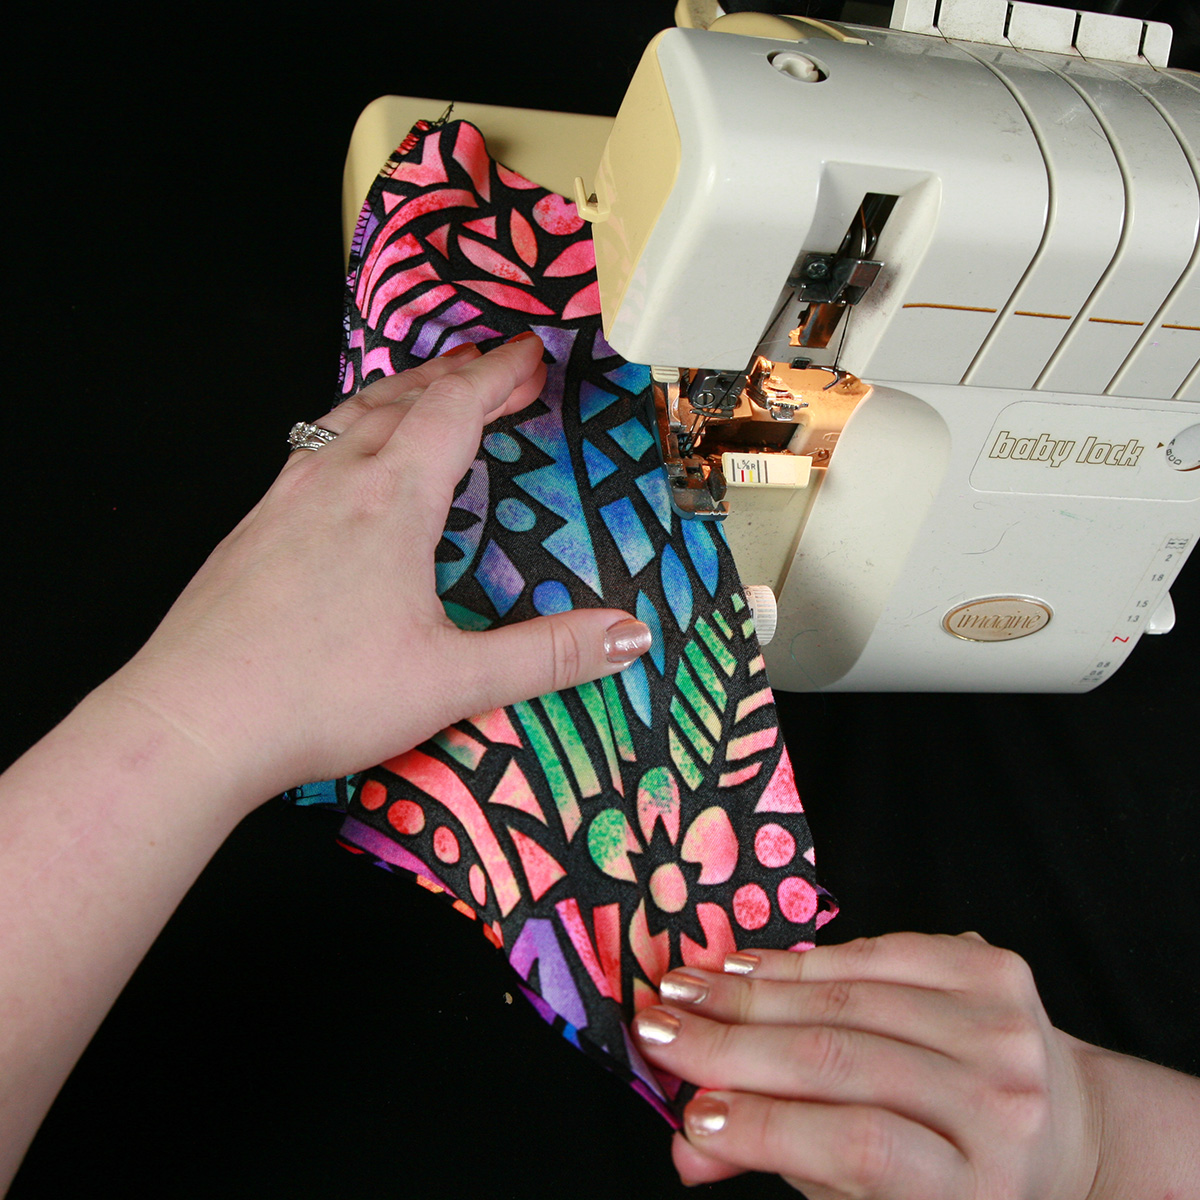 A pair of hands uses a serger to sew a skate cover out of brightly printed fabric.